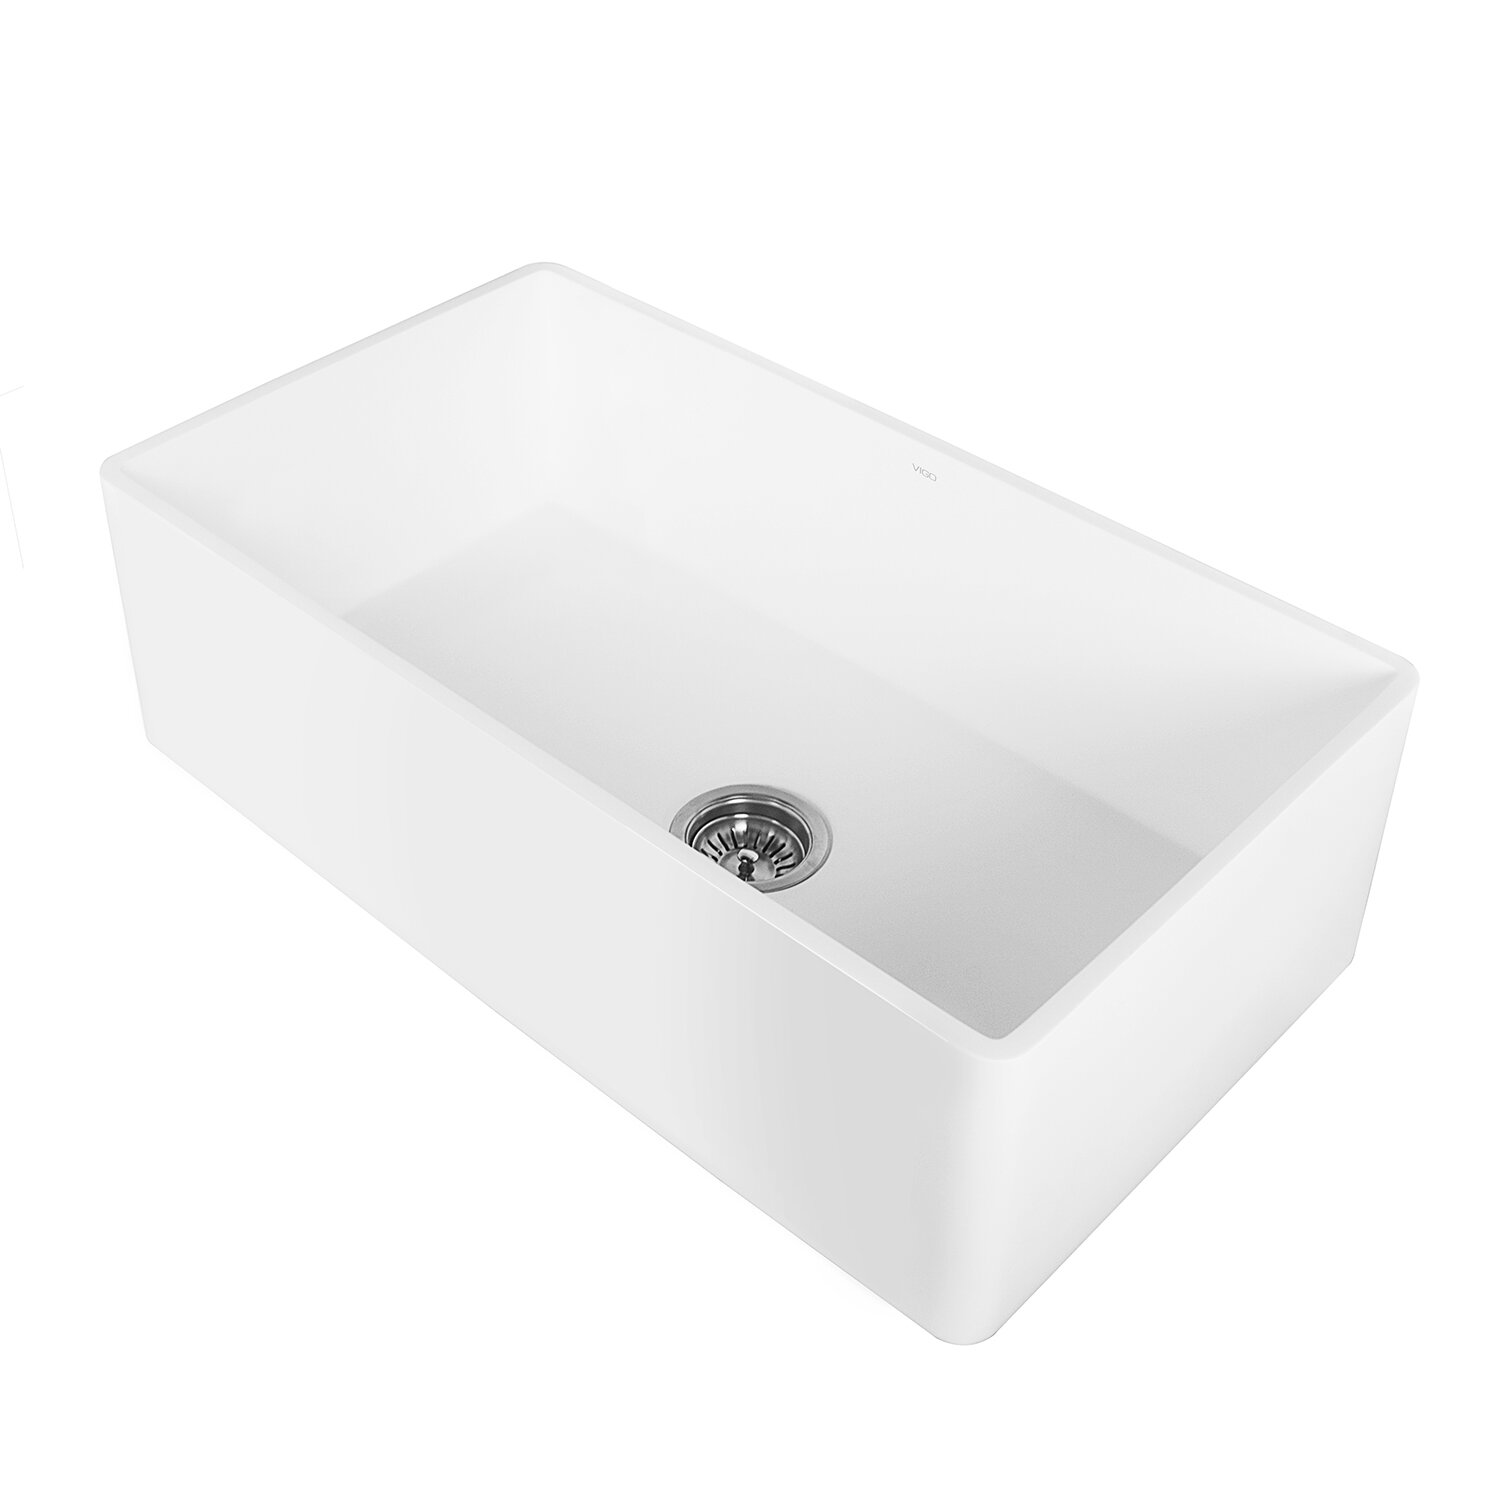 "Vigo 33"" x 18"" Matte Stone Farmhouse Sink & Reviews"